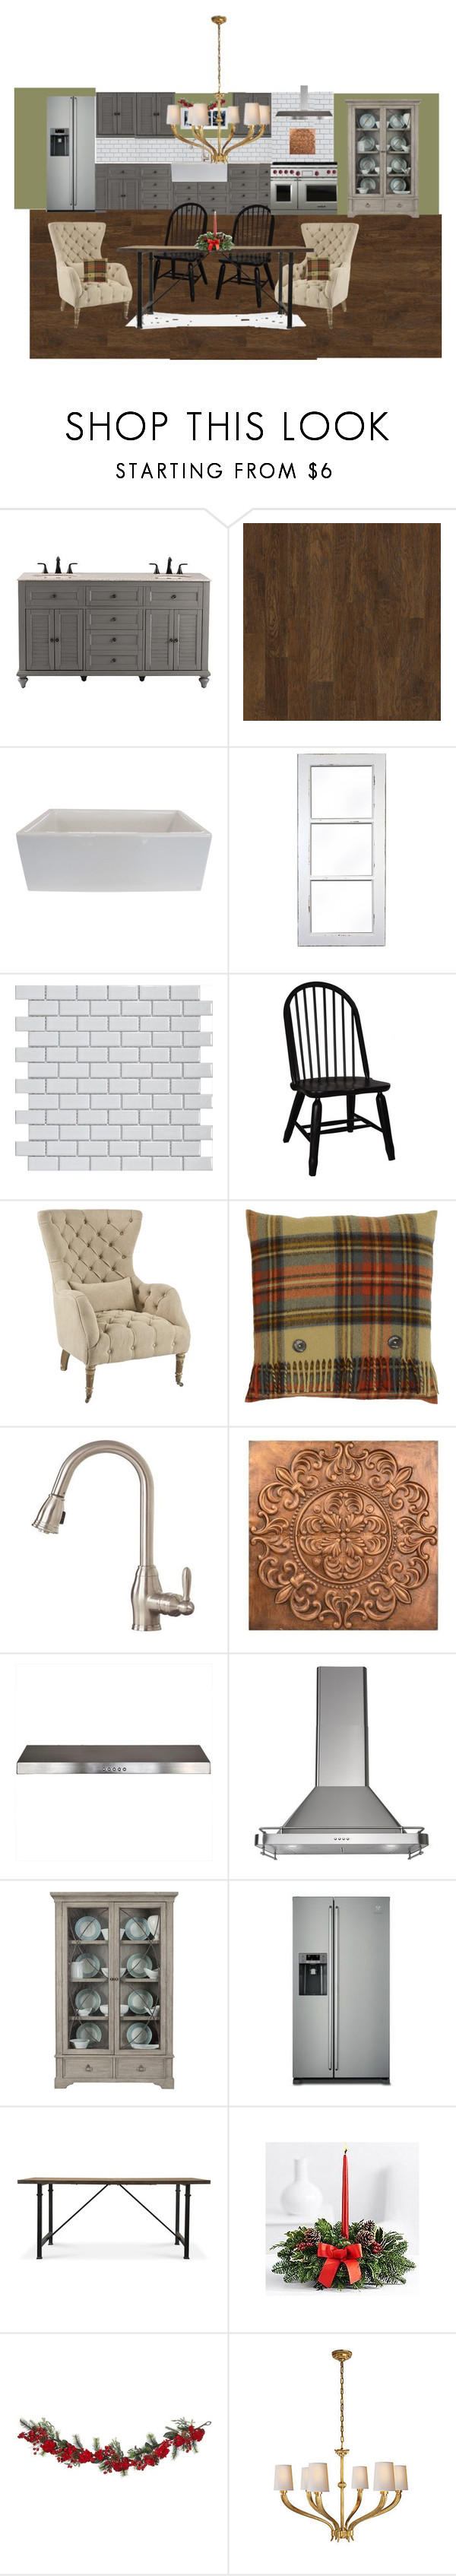 """Untitled #613"" by hayley-tennis ❤ liked on Polyvore featuring interior, interiors, interior design, home, home decor, interior decorating, Home Decorators Collection, Somette, Belle Maison and Merola"